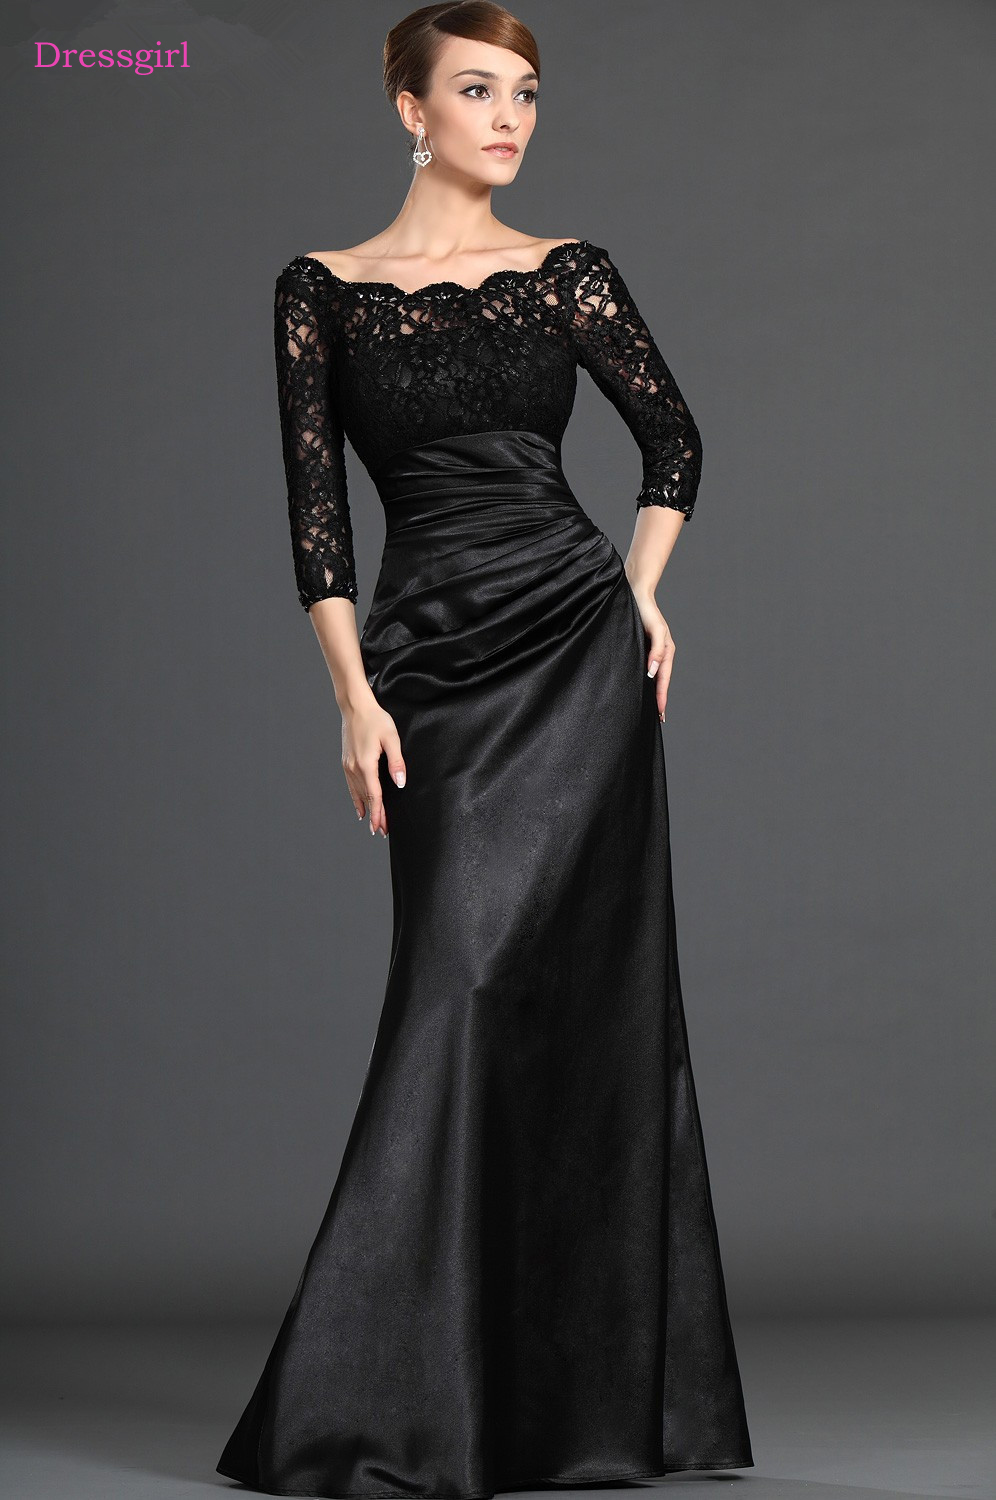 Black 2018 Mother Of The Bride Dresses Mermaid 3/4 Sleeves Satin Lace Plus Size Long Elegant Groom Mother Dresses Wedding